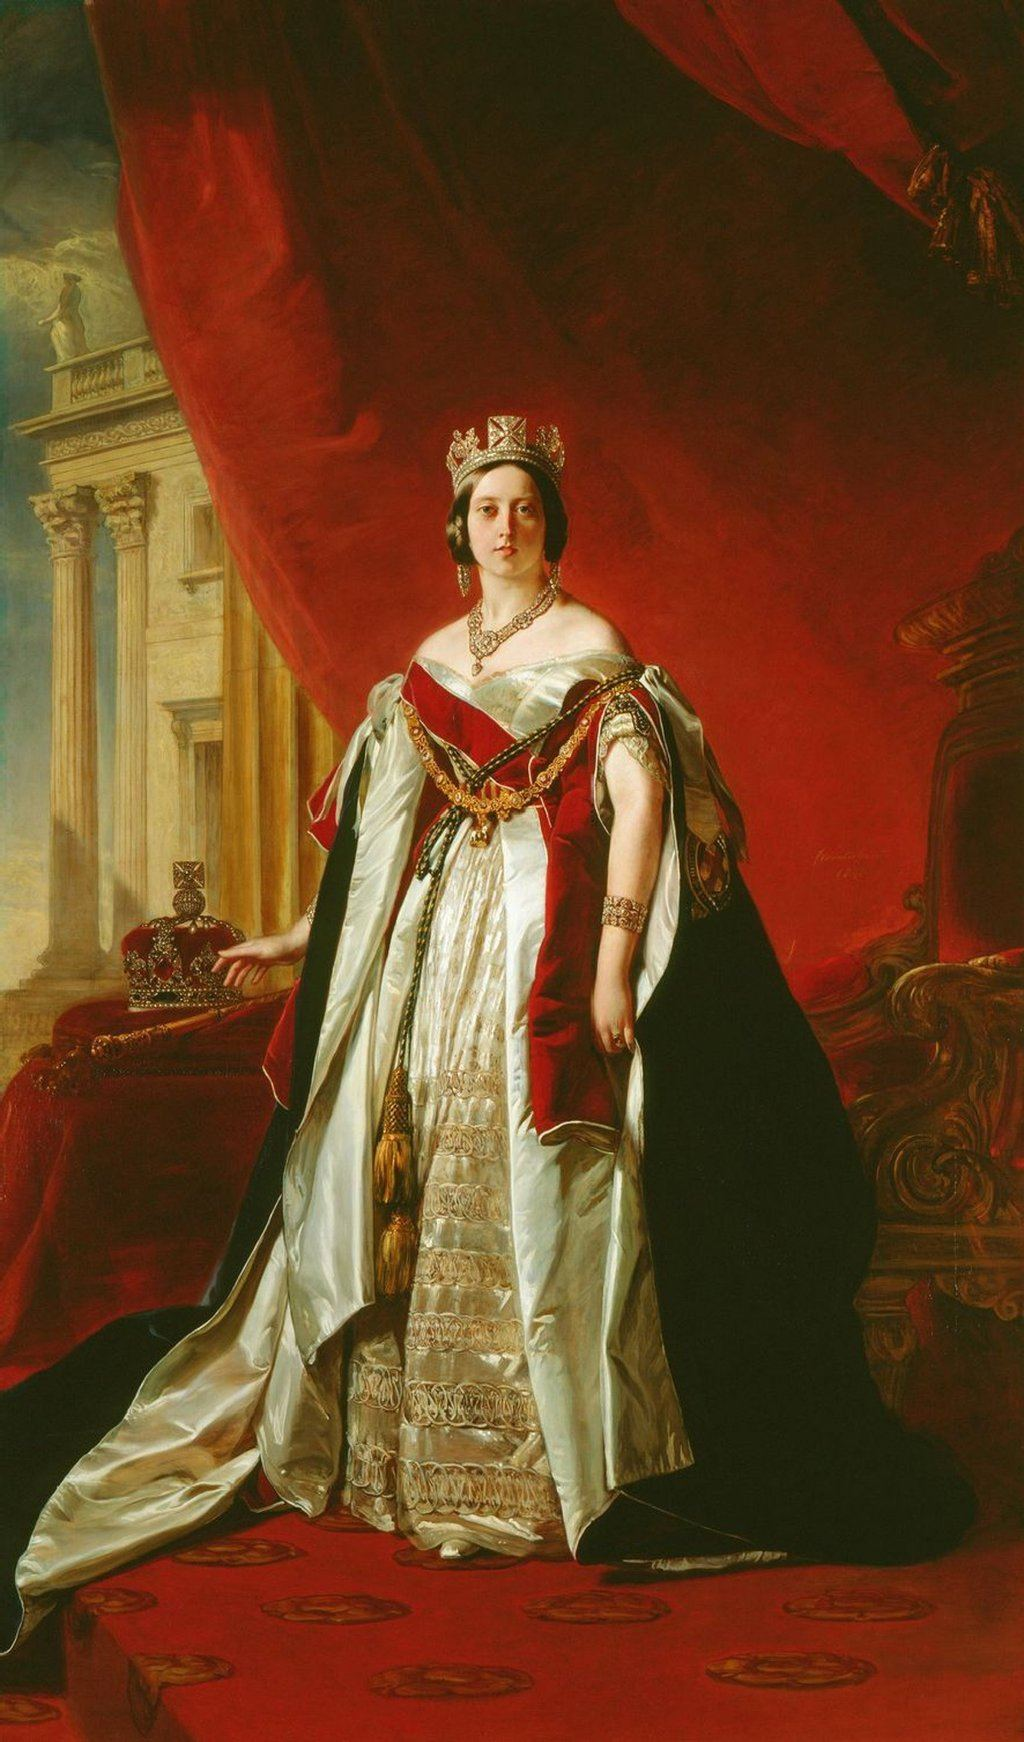 Portrait of Victoria of the United Kingdom I (c.1843). Artist: Franz Xaver Winterhalter Home & Garden > Decor > Artwork > Posters, Prints, & Visual Artwork ArtToyourlife